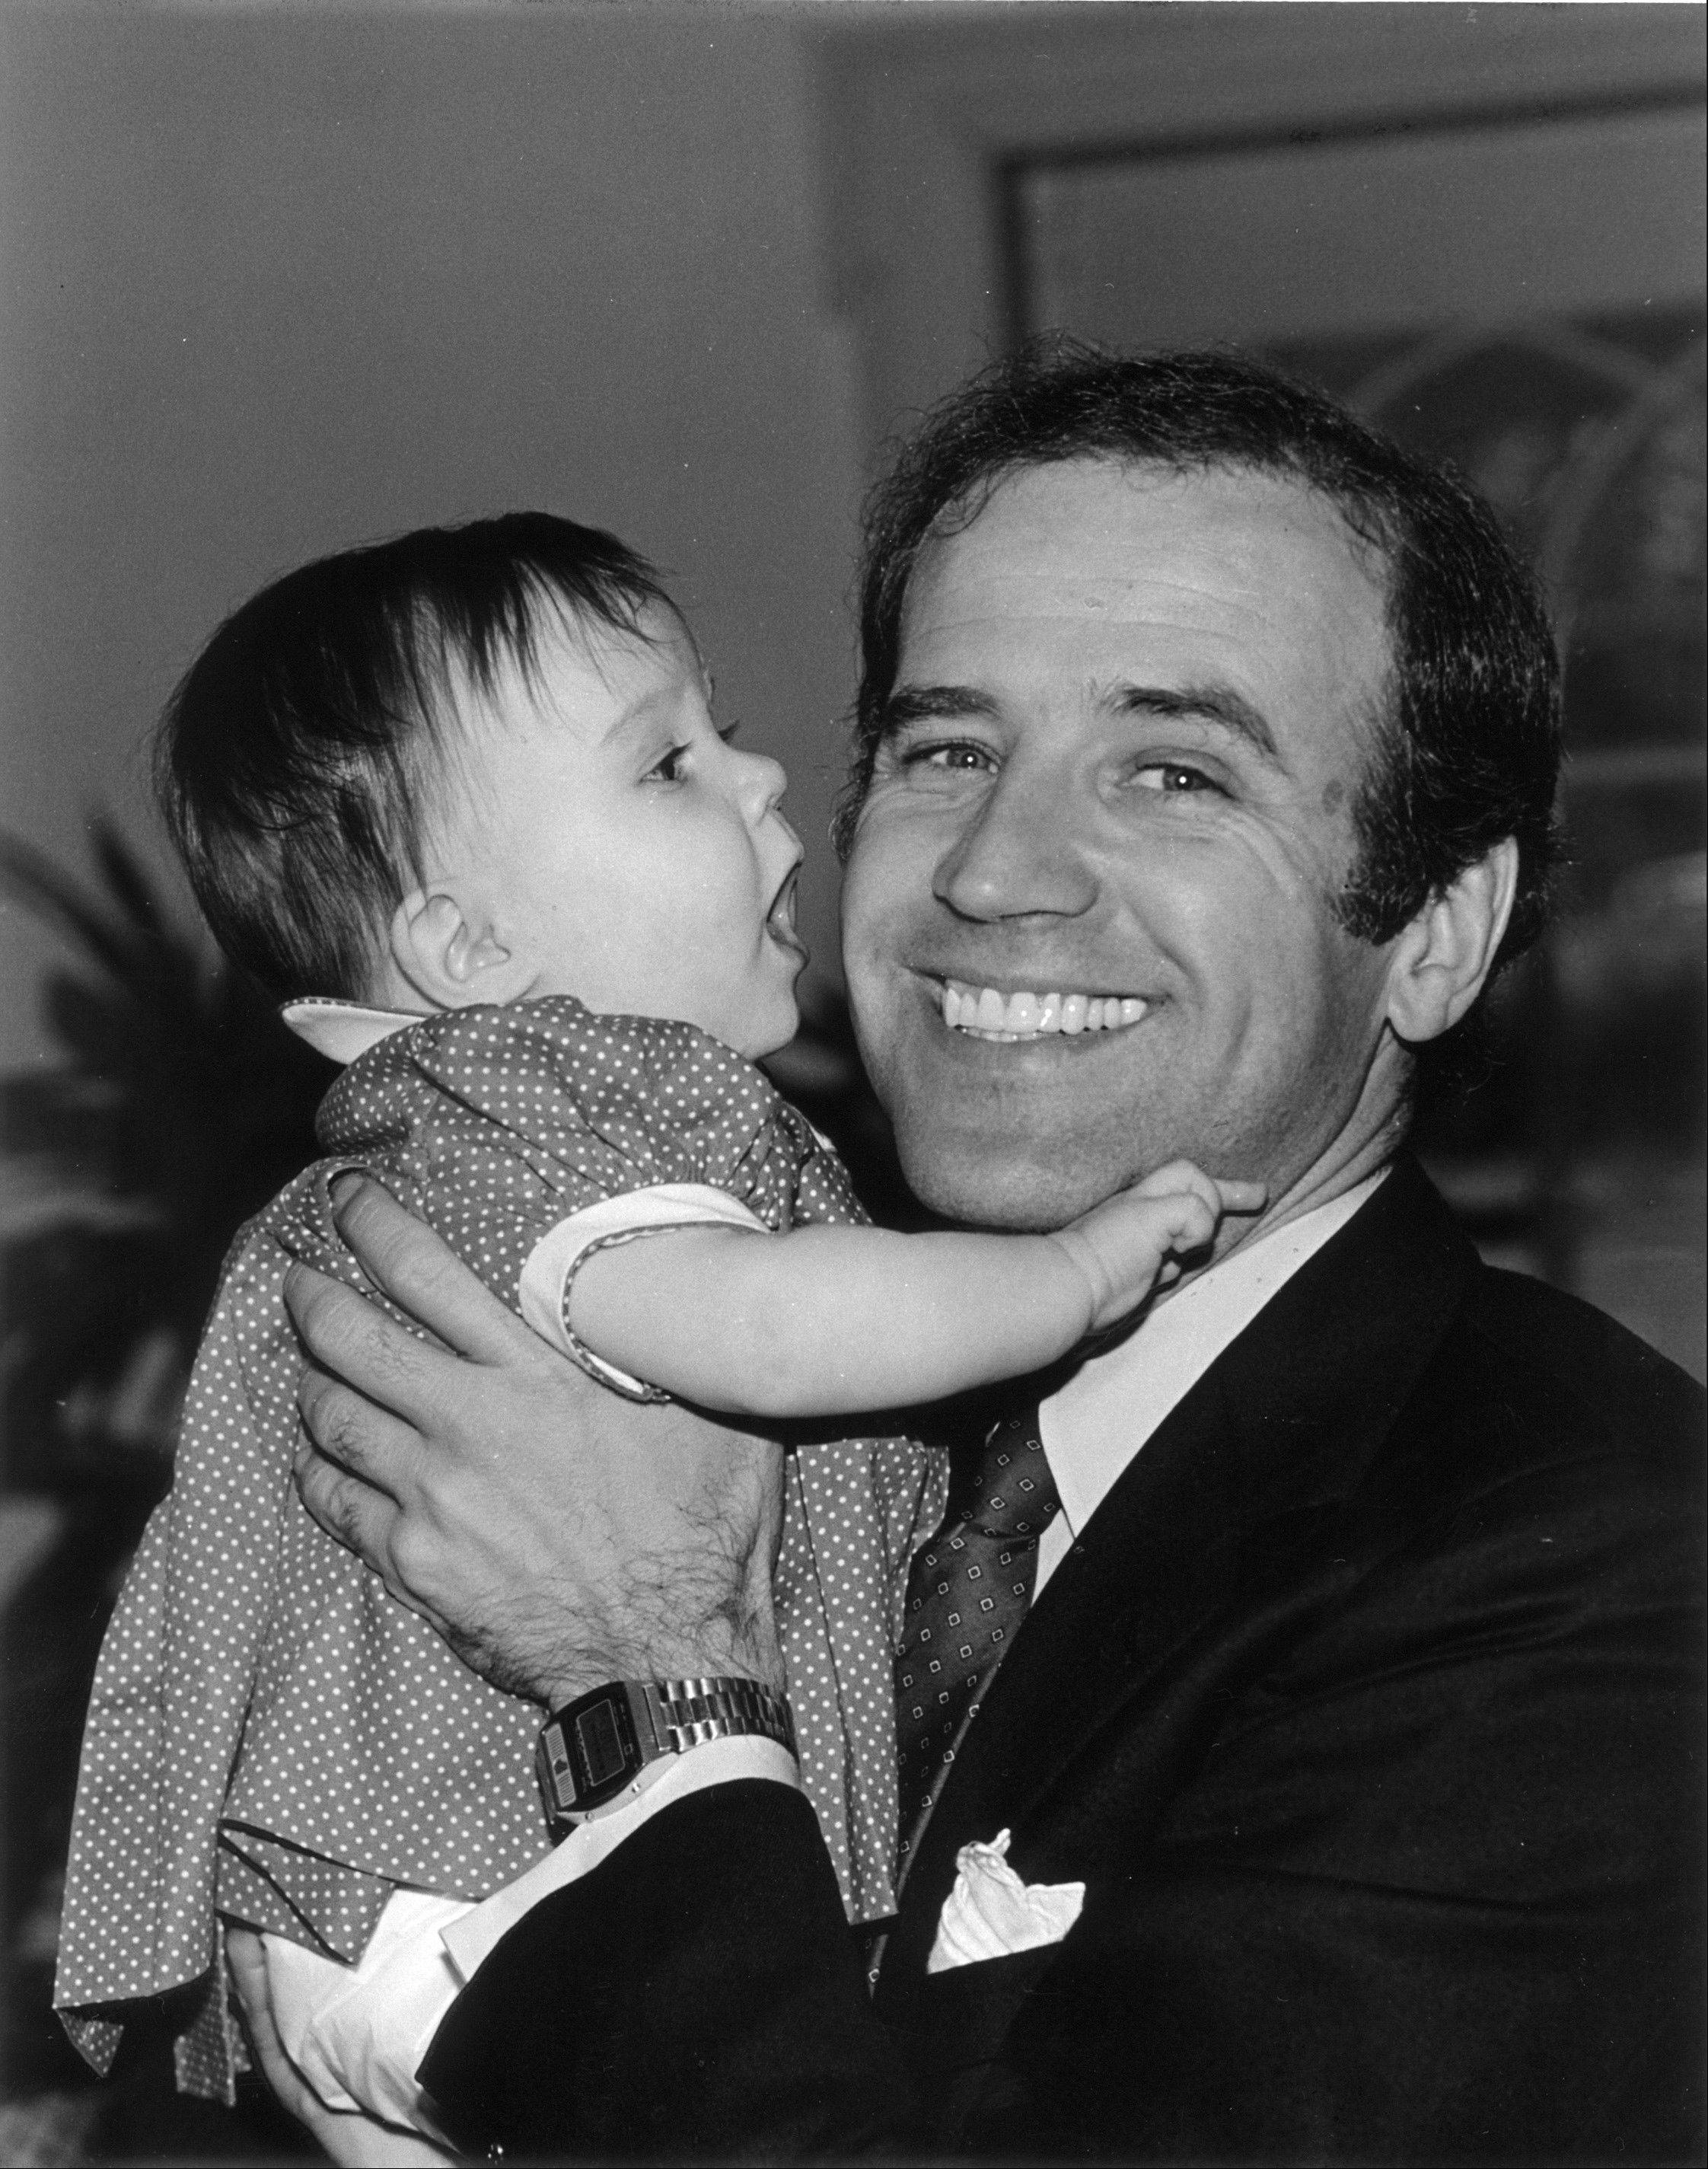 In this photo provided by Sen. Joe Biden's office, then-Sen. Joe Biden, D-Del., holds his daughter Ashley. In May, after Joe Biden tripped up his boss by voicing support for same-sex marriage while the president remained on the fence, there was speculation about whether the remarks were spontaneous or deliberate. But to those who know Biden, there was no doubt. He was just speaking his mind.